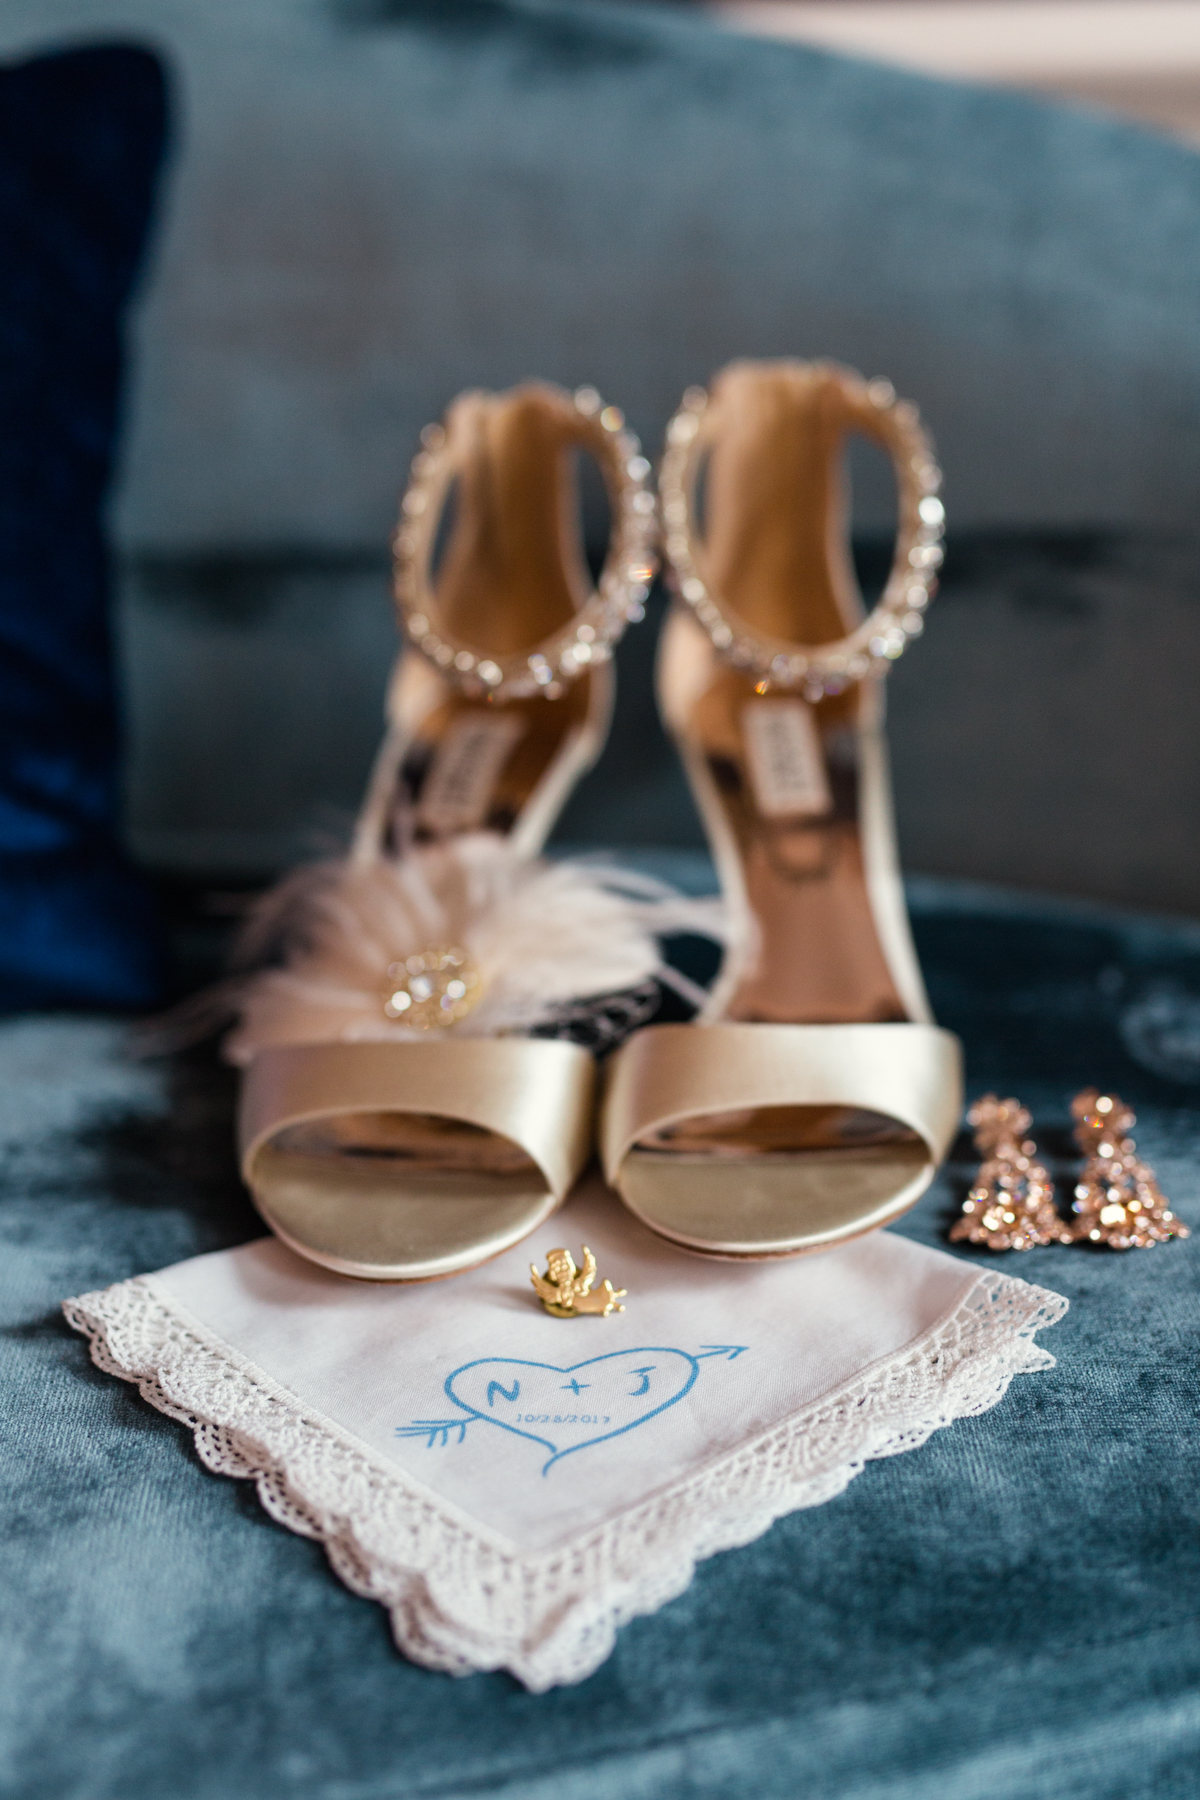 City-Winery-Chicago-wedding-by-Emma-Mullins-Photography-2